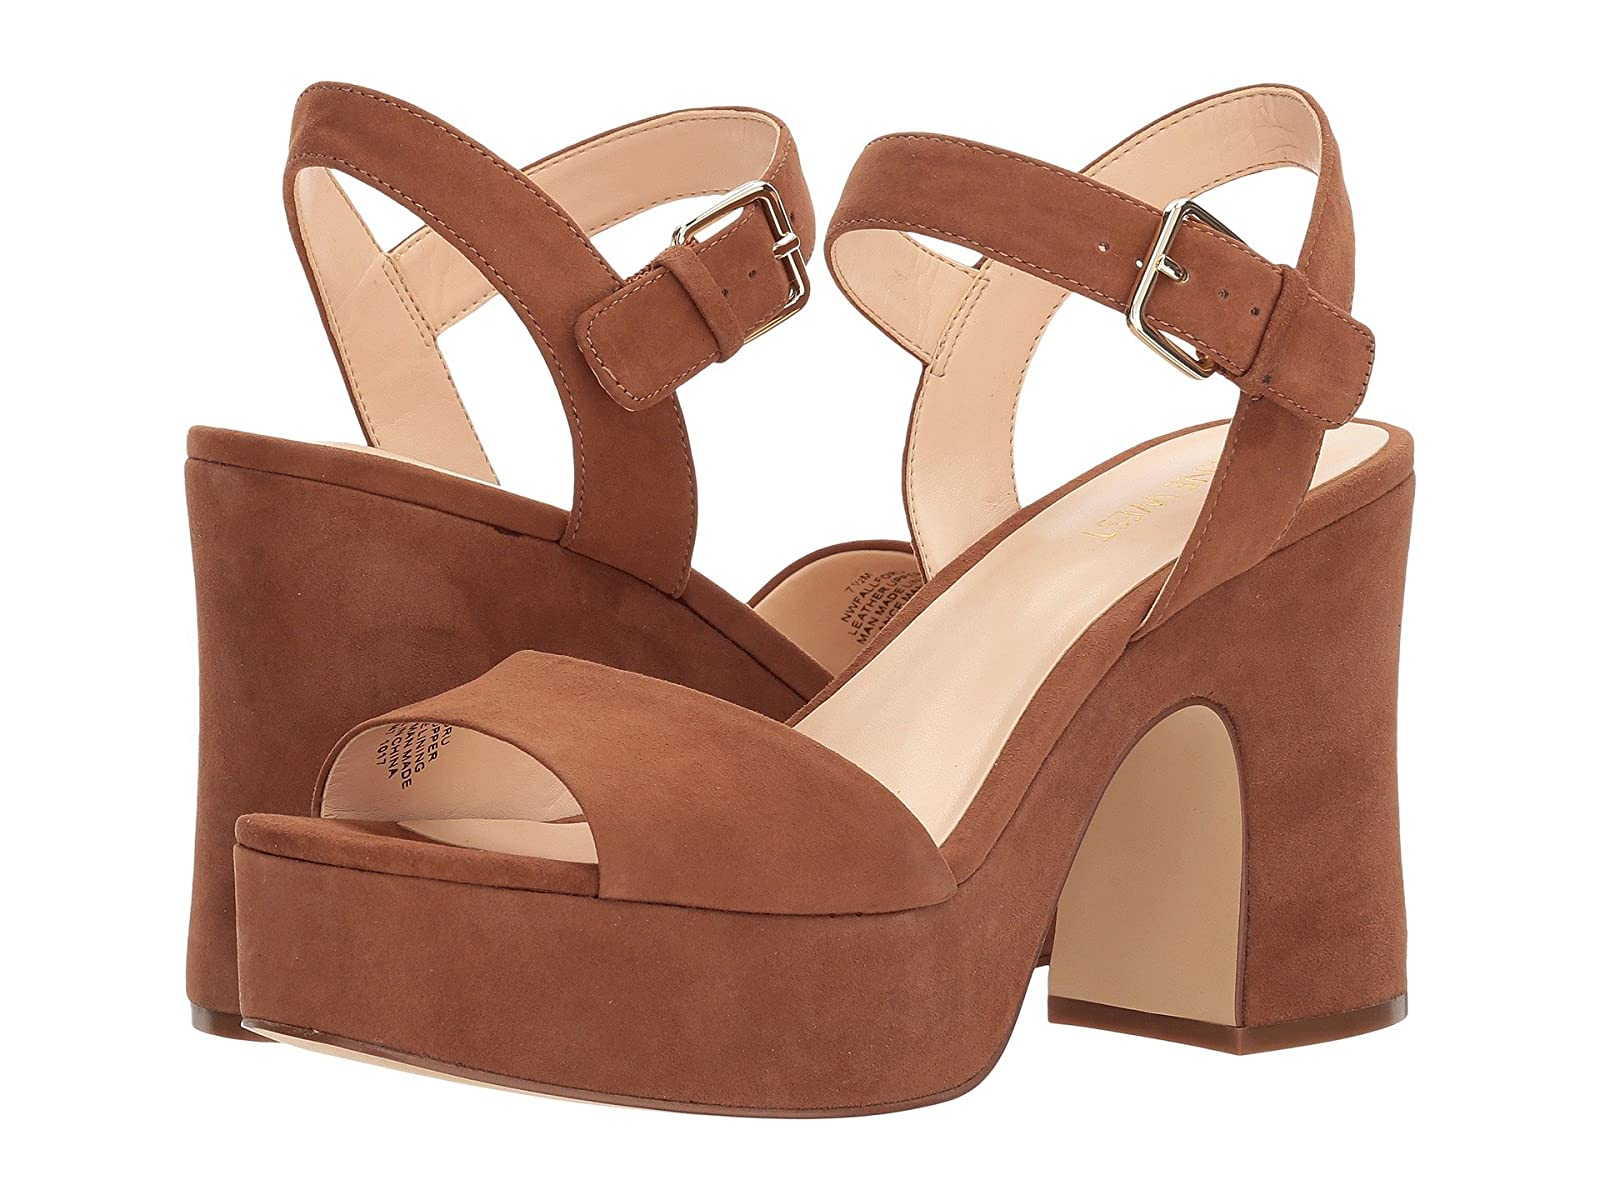 Nine West Fallforu Heel SandalAtmospheric grades have affordable shoes